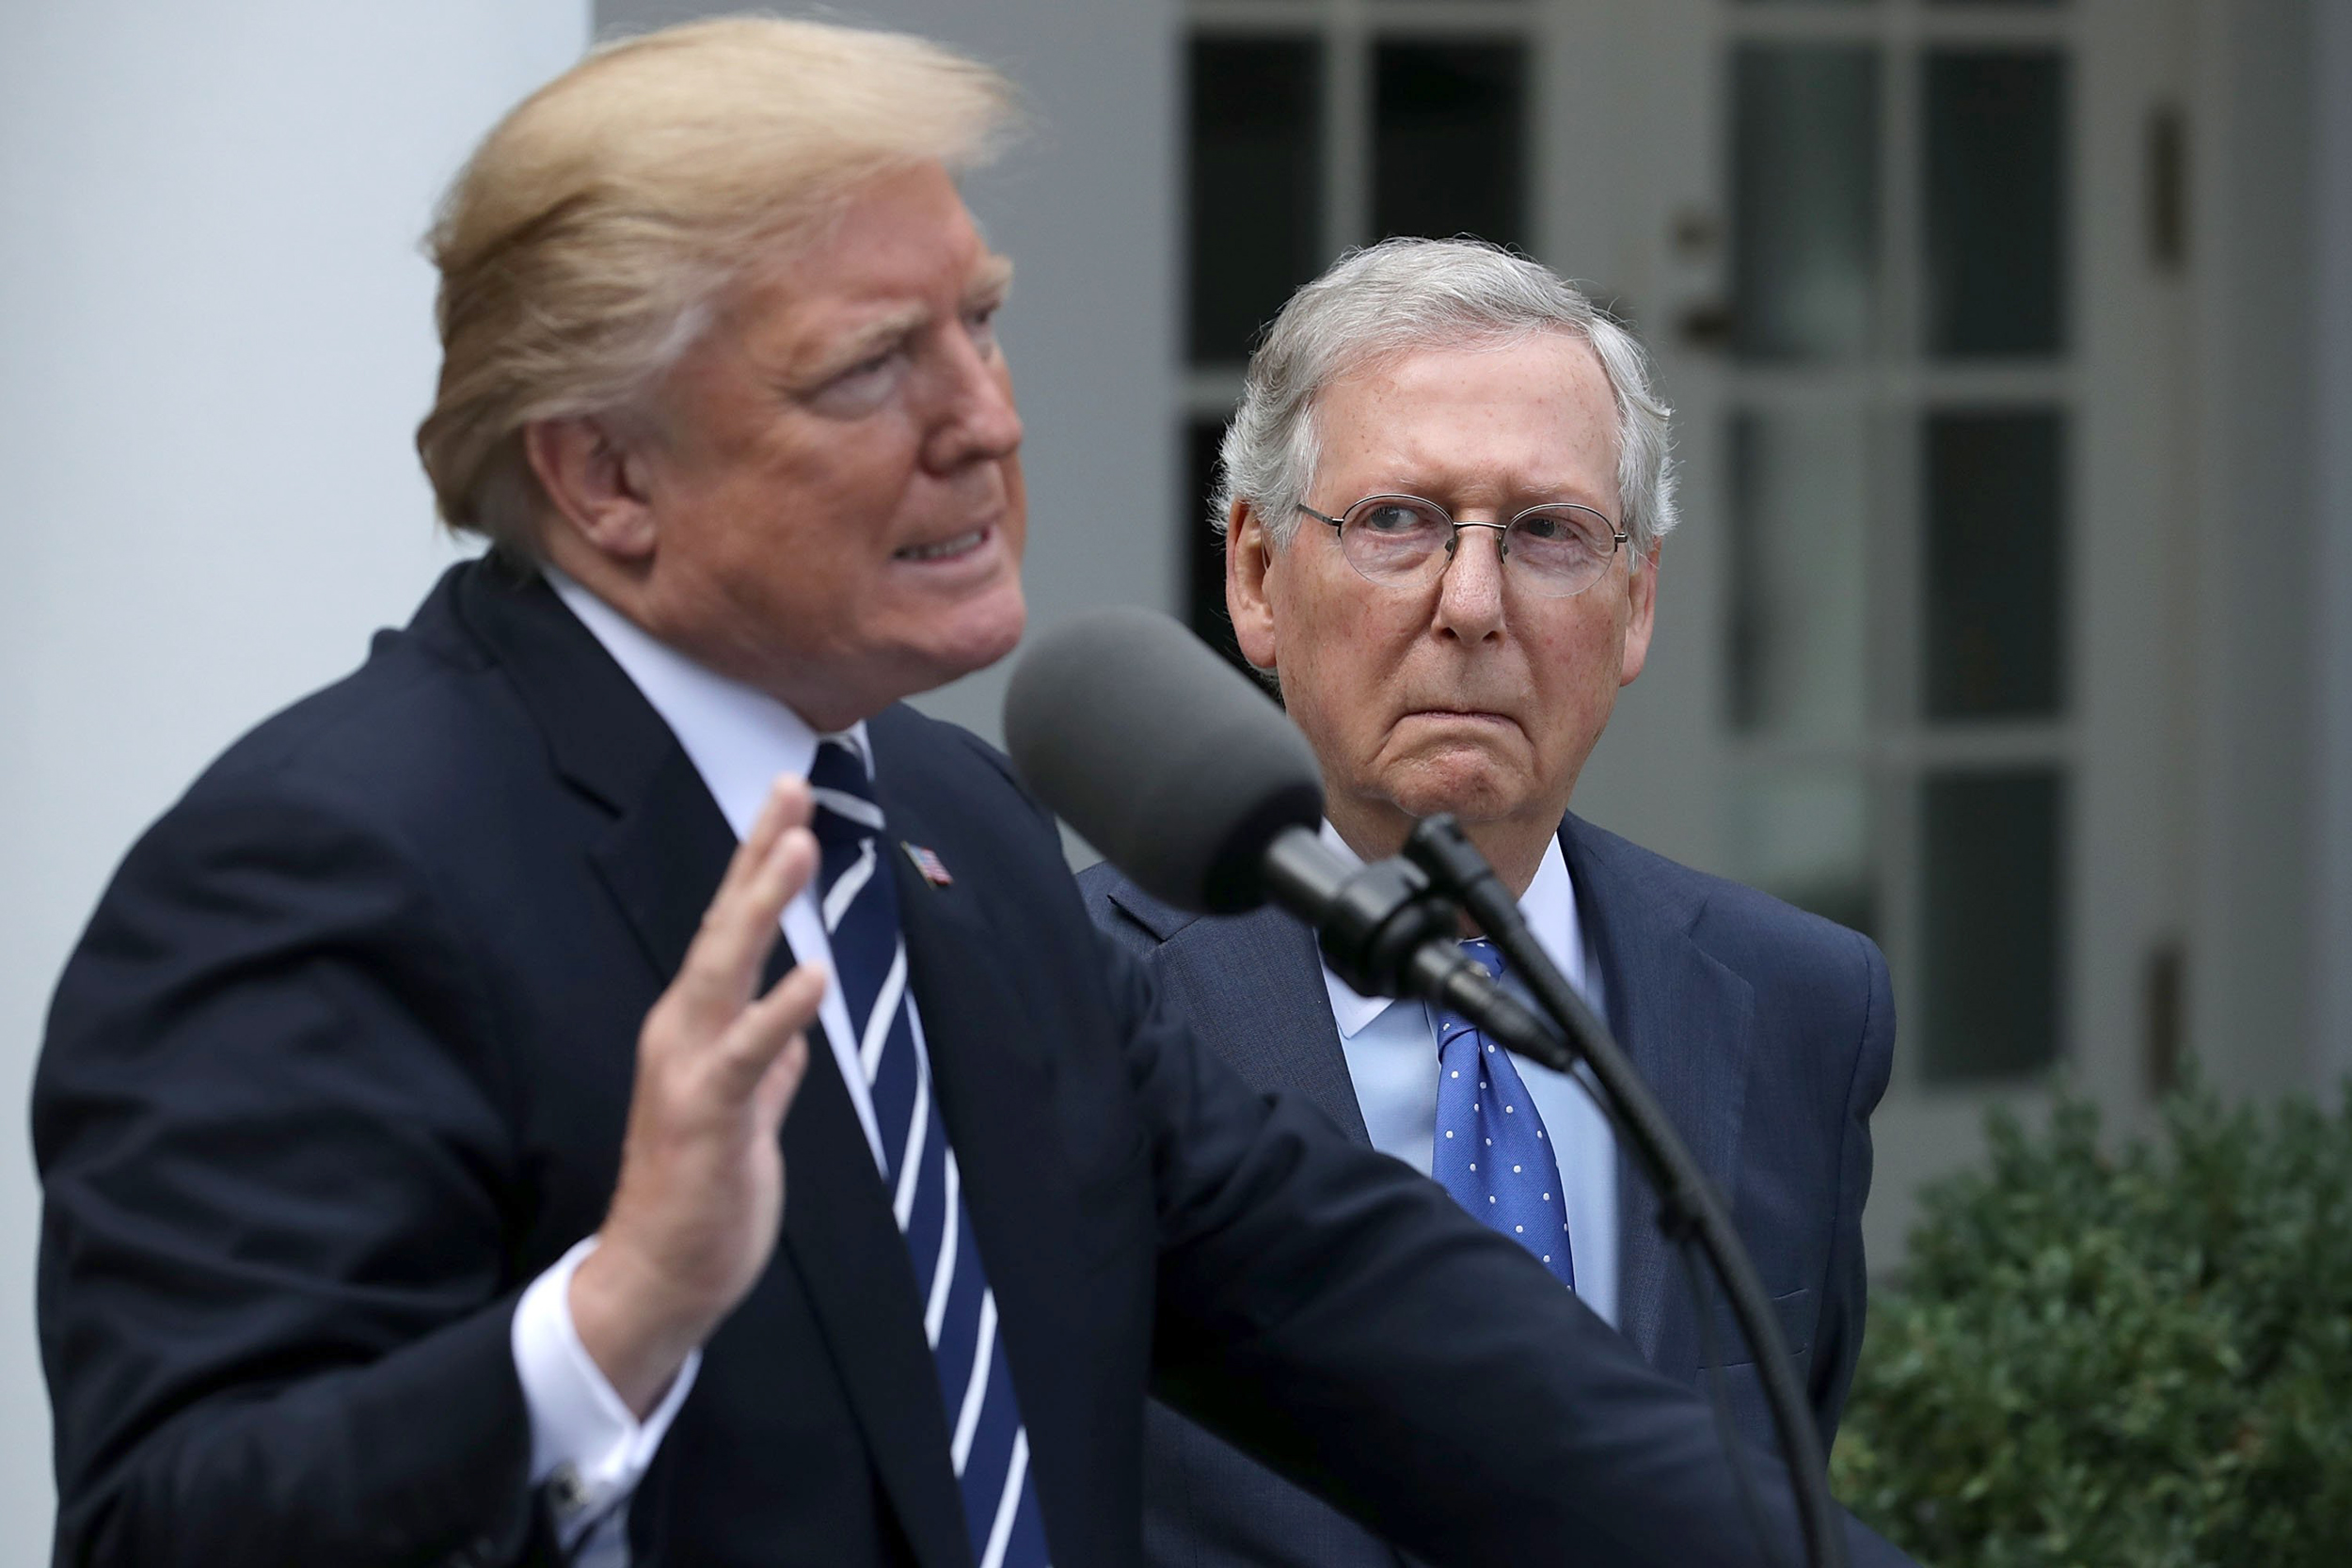 Image: U.S. President Donald Trump and Senate Majority Leader Mitch McConnell (R-KY) talk to reporters in the Rose Garden following a lunch meeting at the White House Oct. 16, 2017 in Washington, DC.